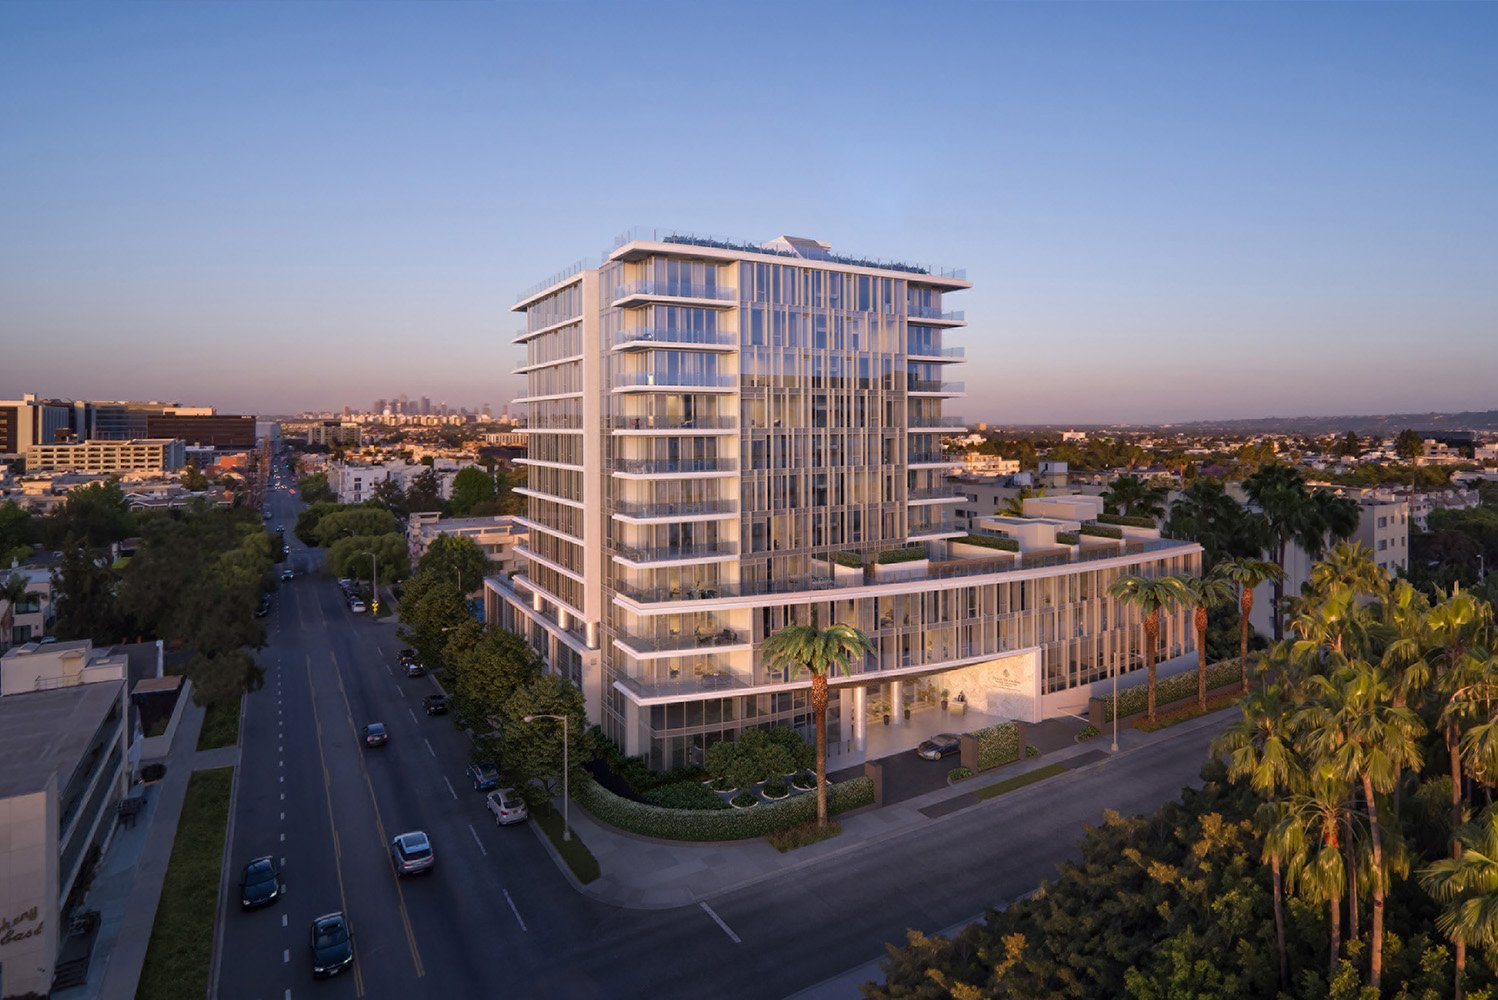 Four Seasons Private Residences Los Angeles, which will be located at 9000 W. 3rd Street, is the company's first standalone residential project in North America.